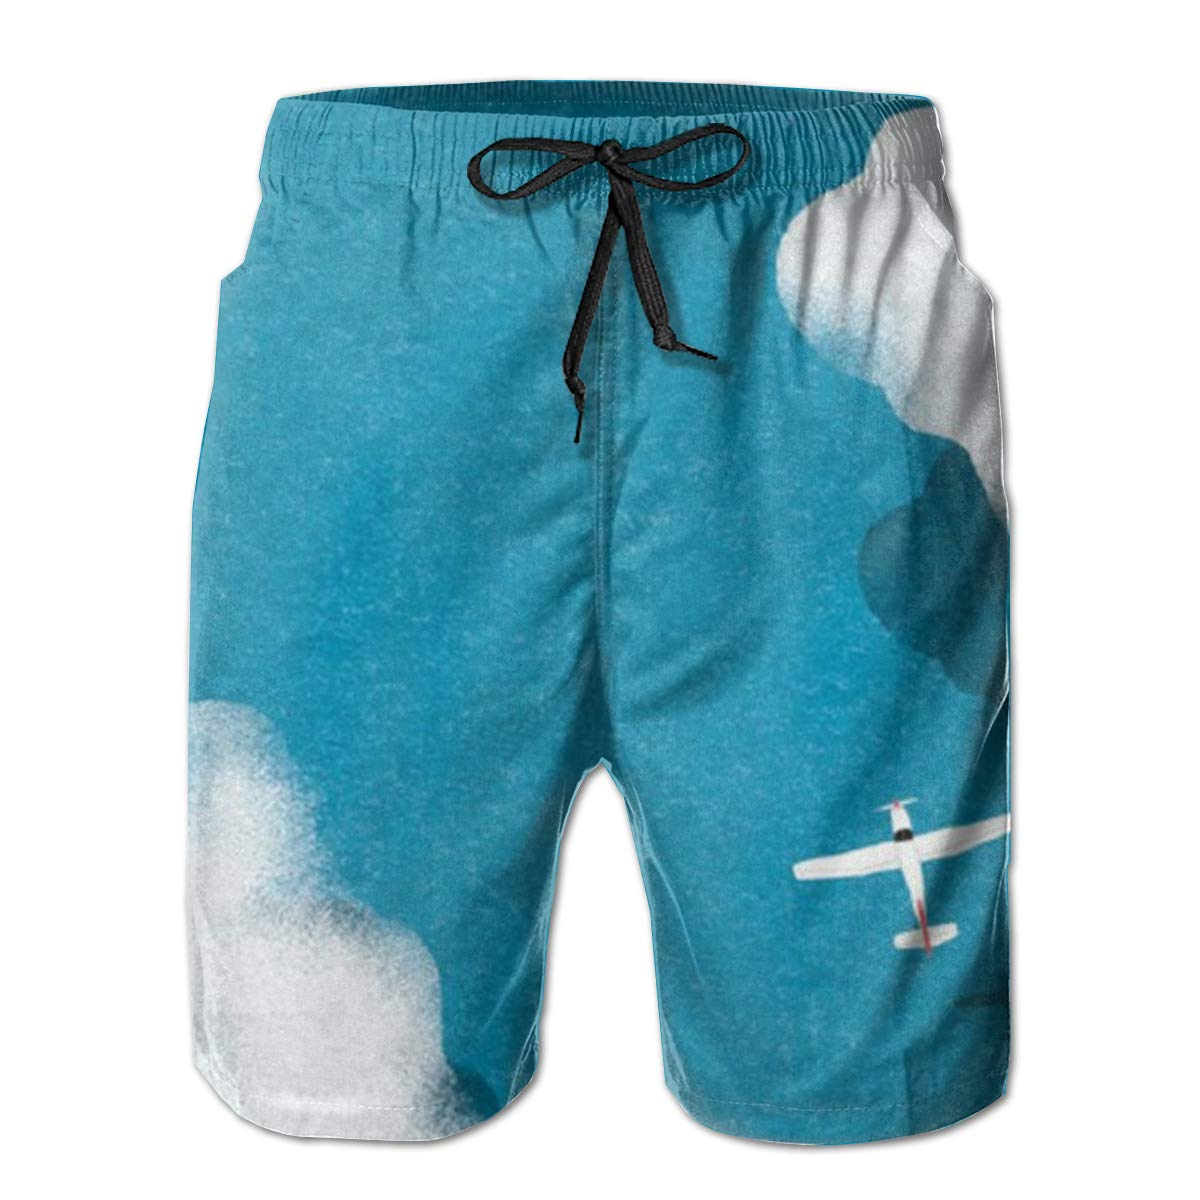 Plane and Sky Men/'s Beach Board Shorts Quick Dry Swim Truck Shorts White